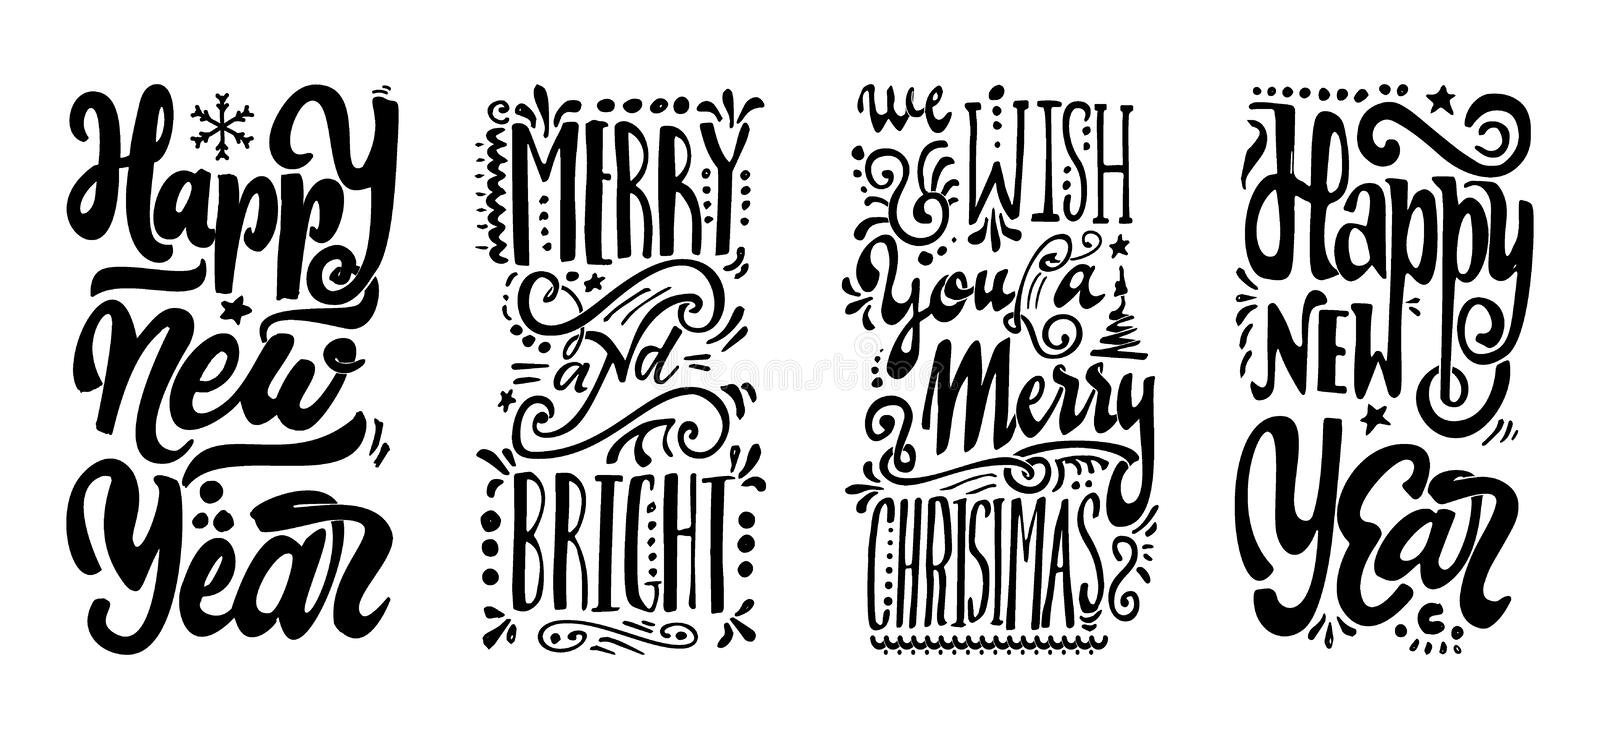 Download Happy New Year We Wish You A Merry Christmas And BrightHand